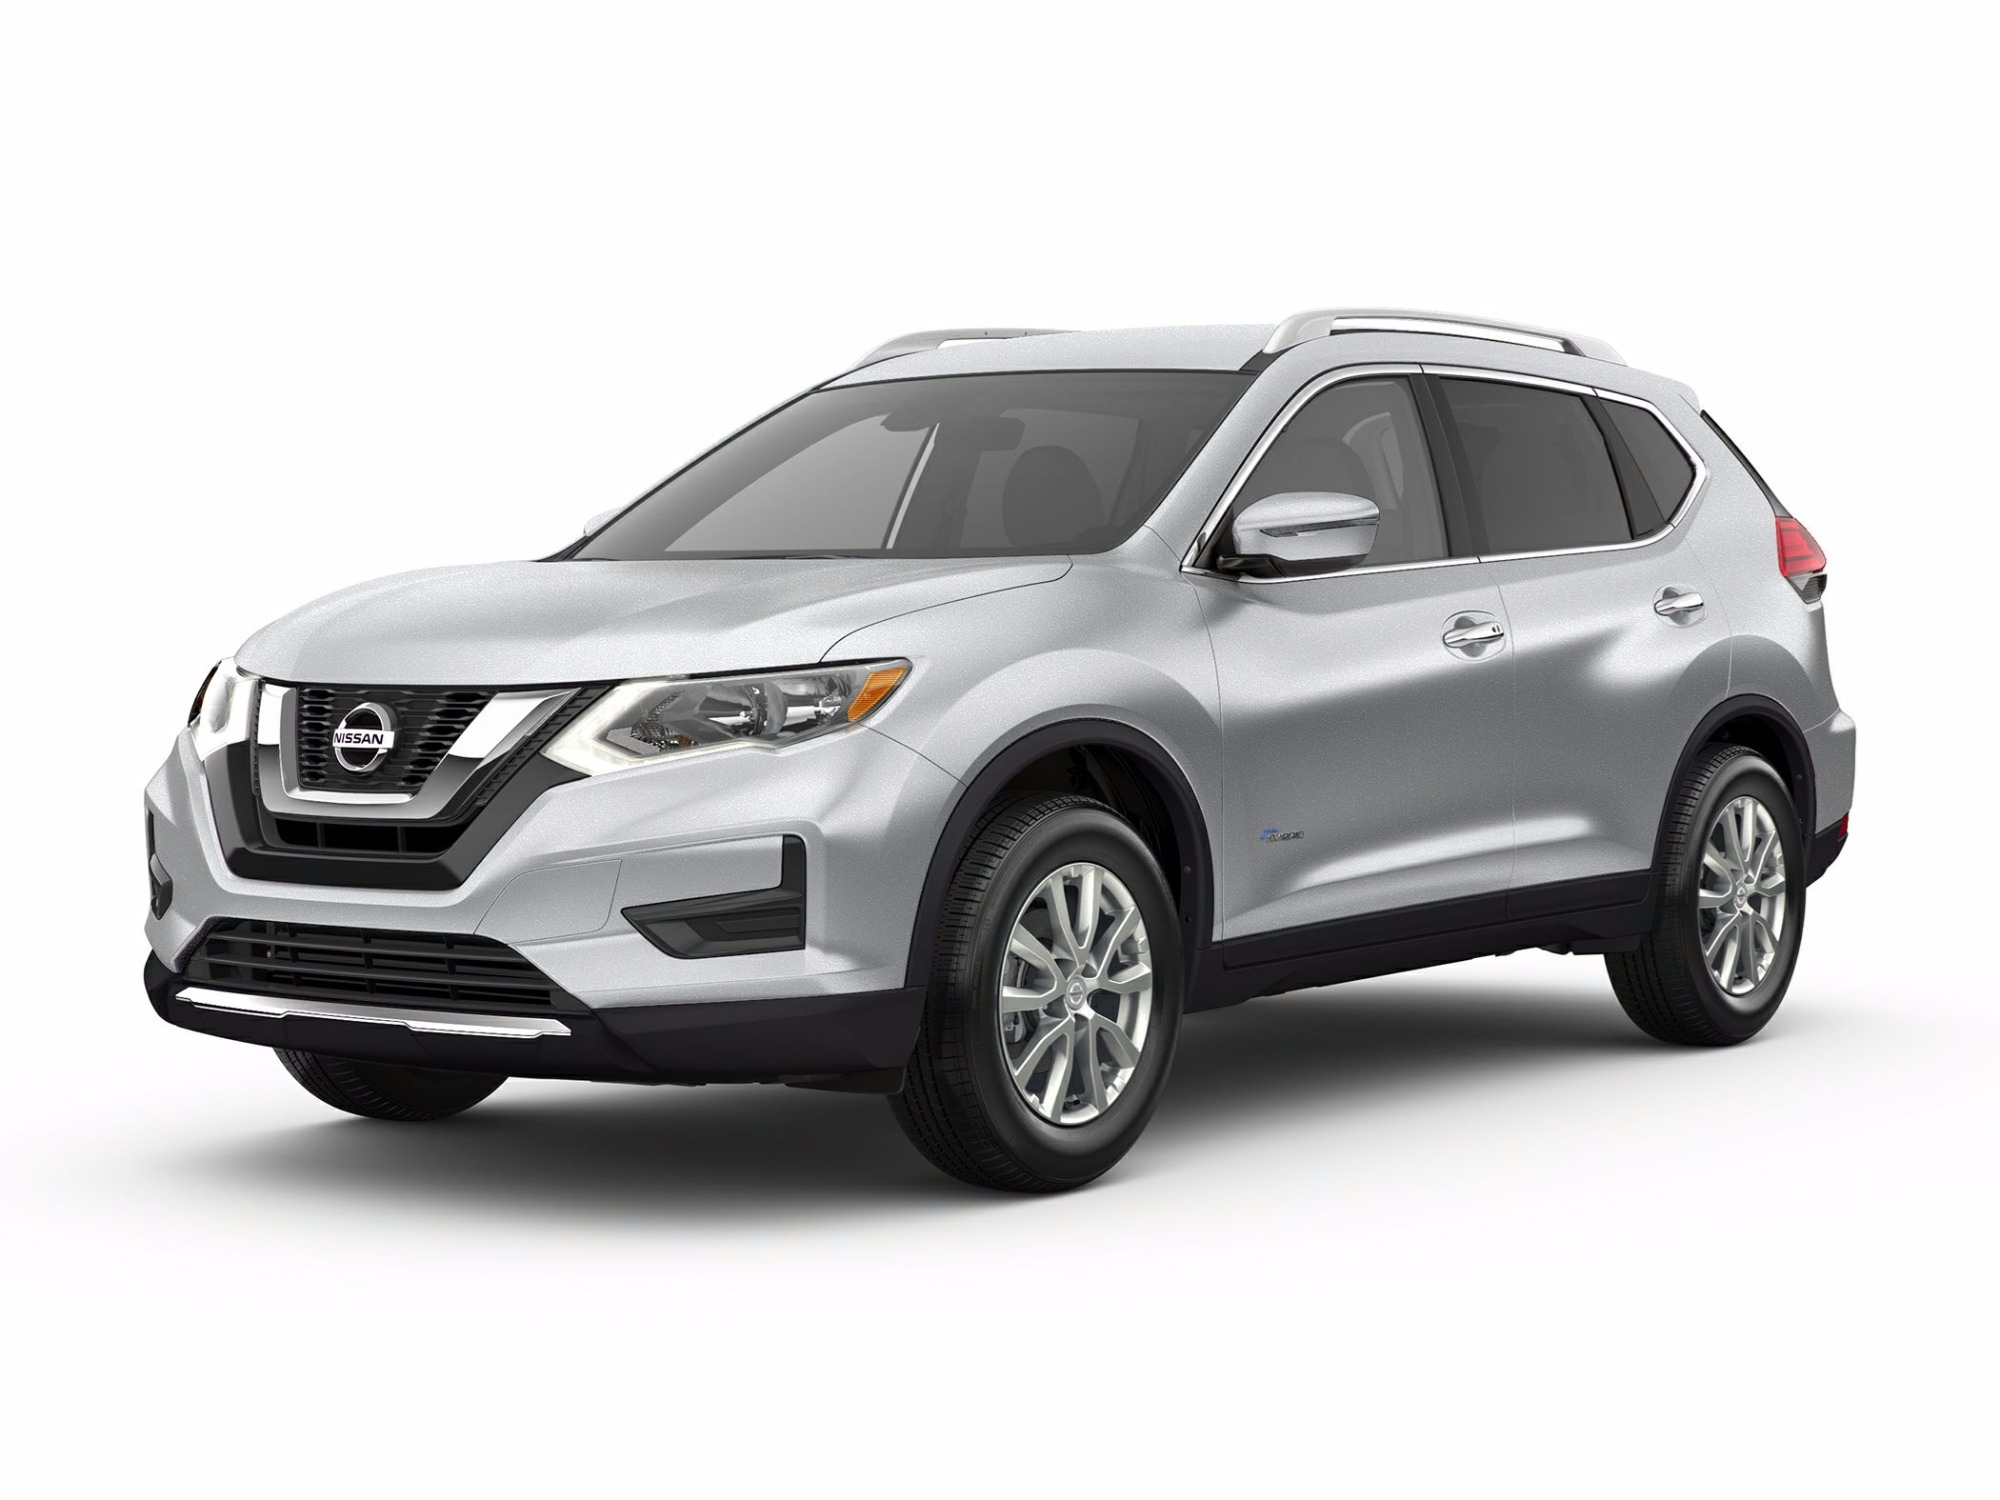 2016 Nissan Rogue Hybrid SV Full Specs Features And Price